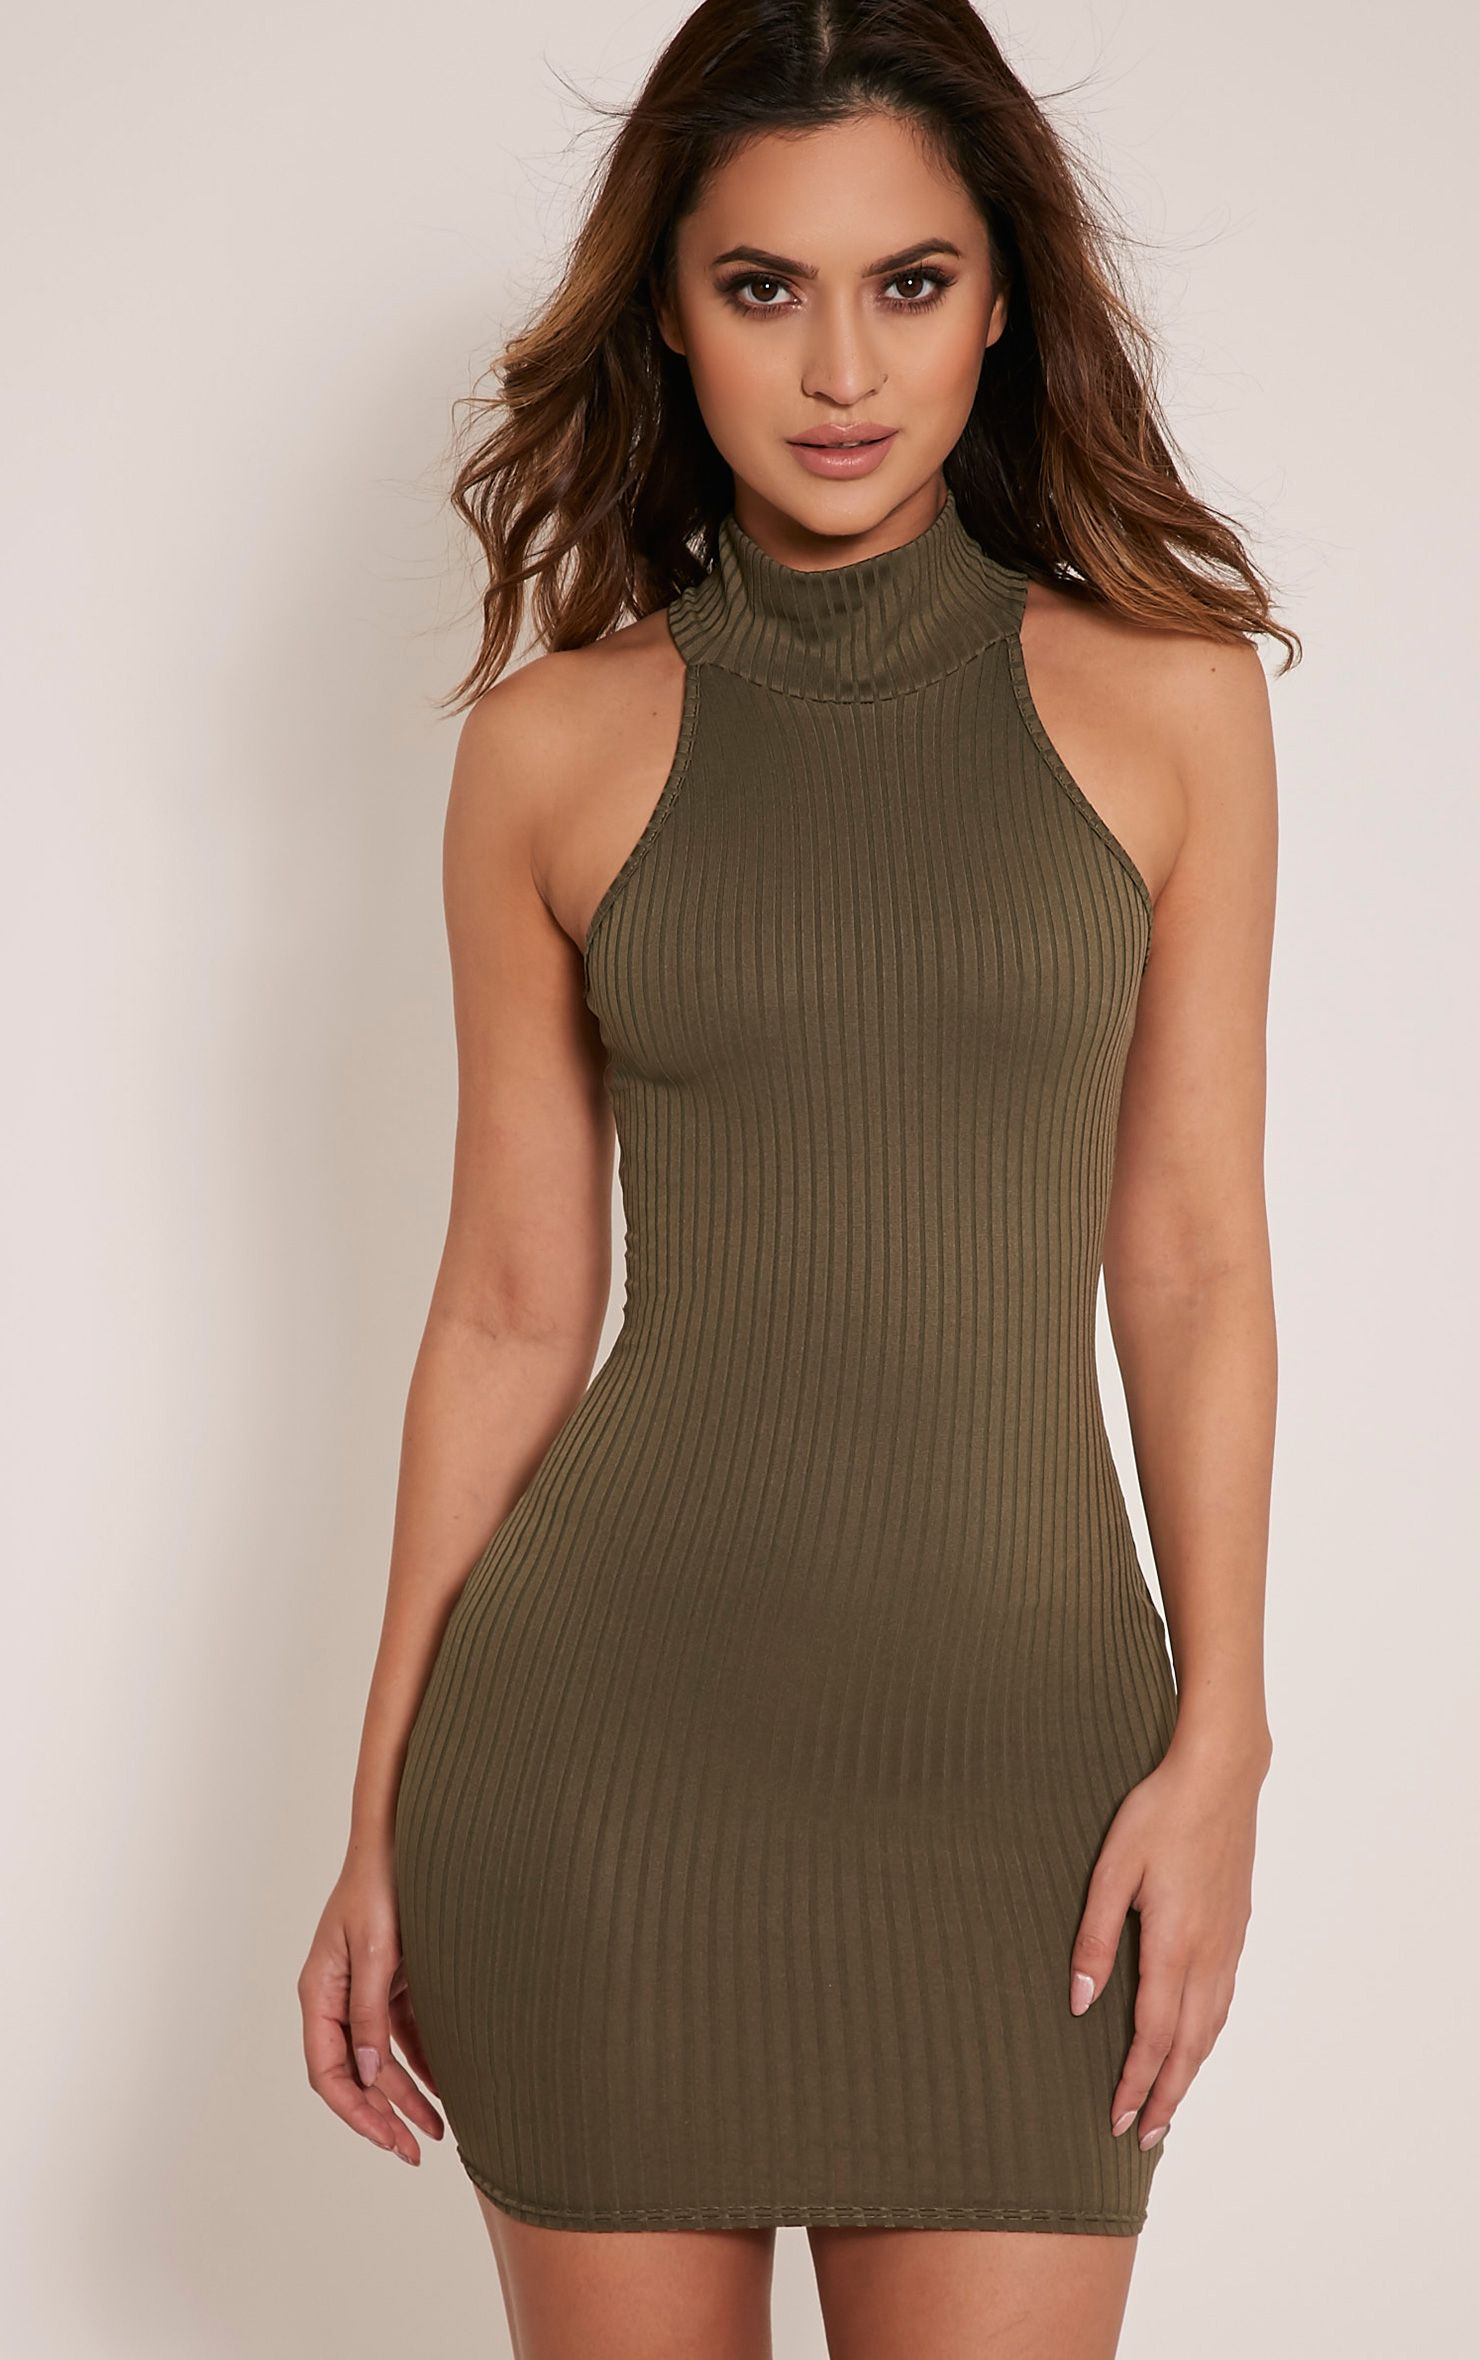 Pearla Khaki Racer Neck Ribbed Bodycon Dress 1